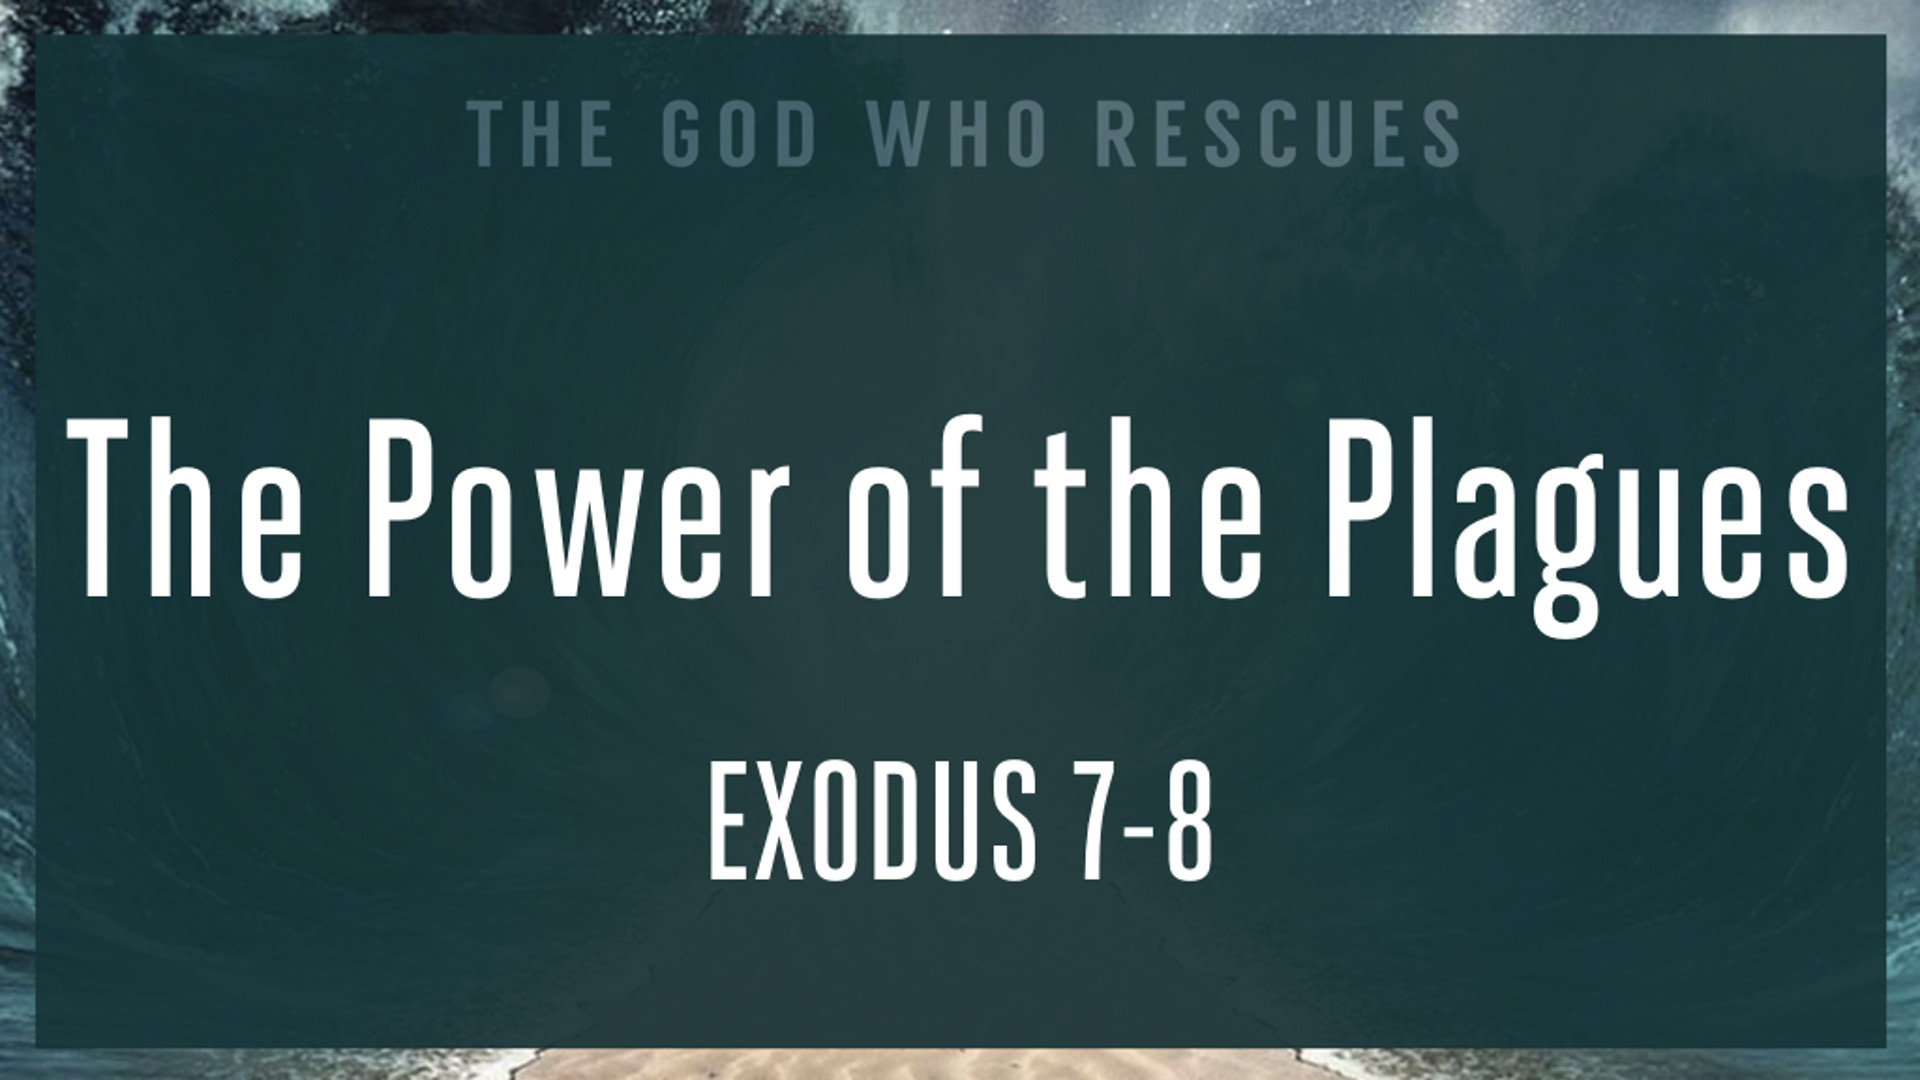 Exodus 7-8 The Power of the Plagues.jpg